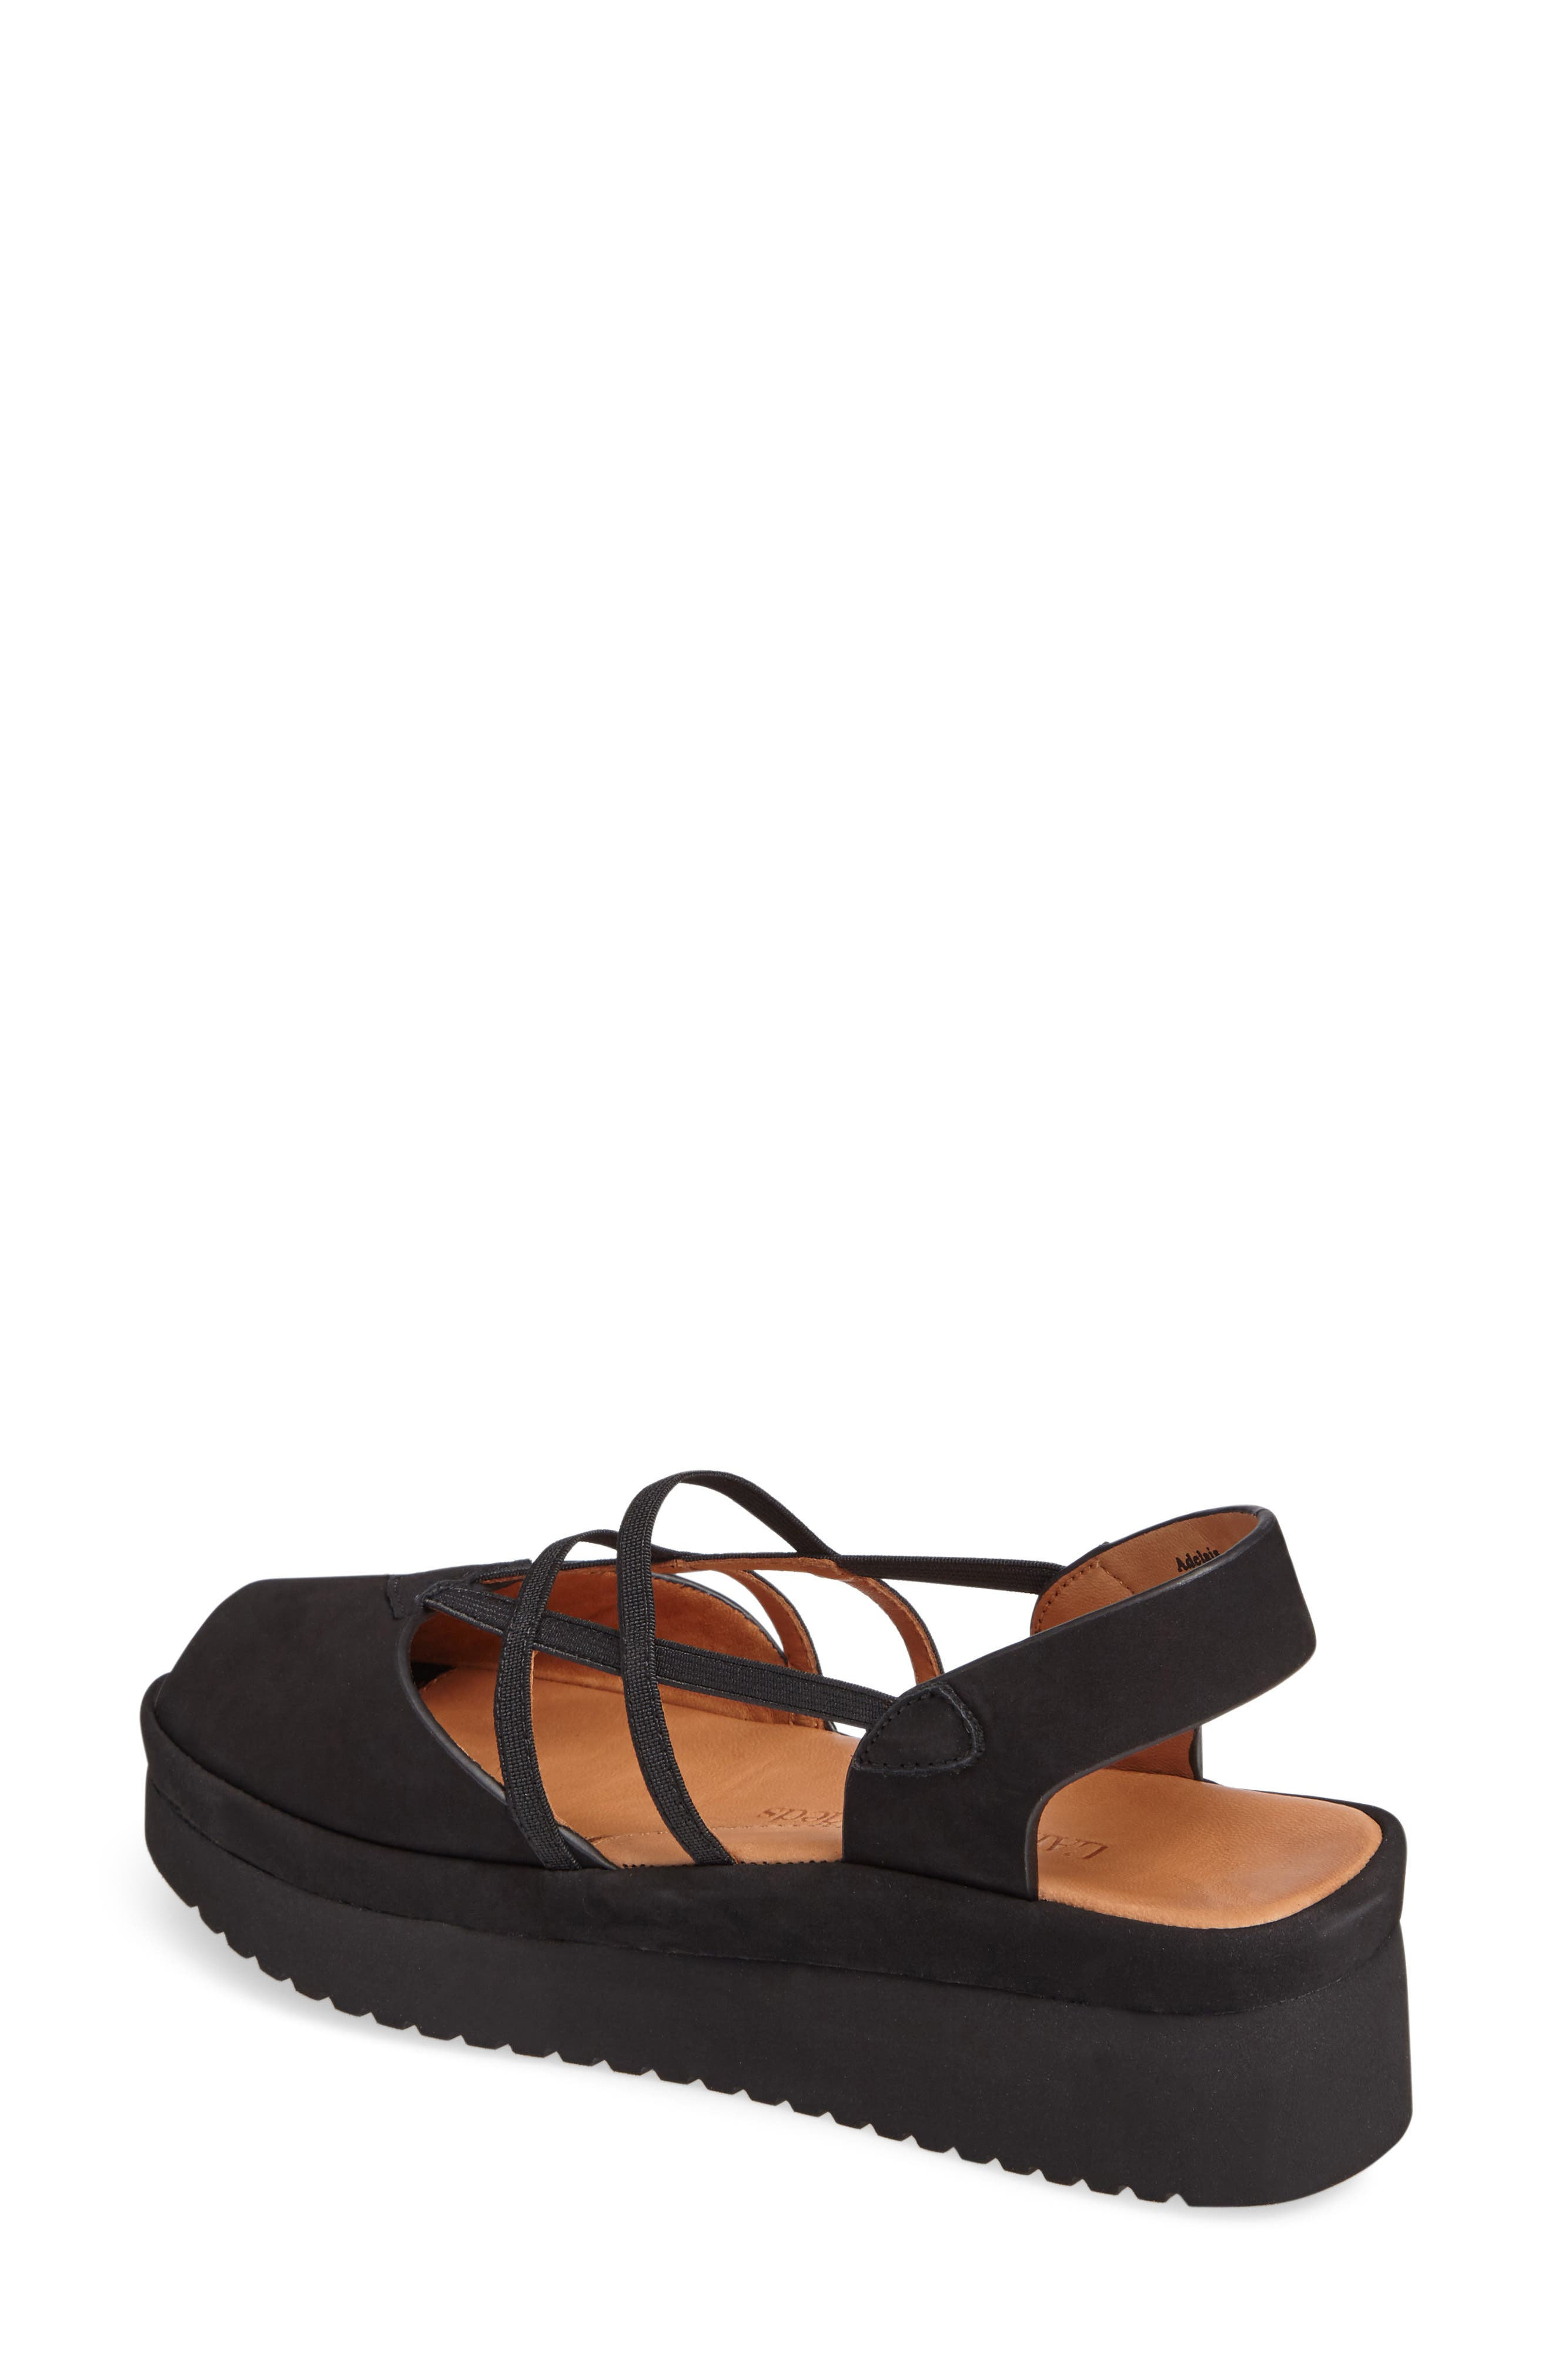 L'AMOUR DES PIEDS, Adelais Platform Wedge Sandal, Alternate thumbnail 2, color, BLACK NUBUCK LEATHER